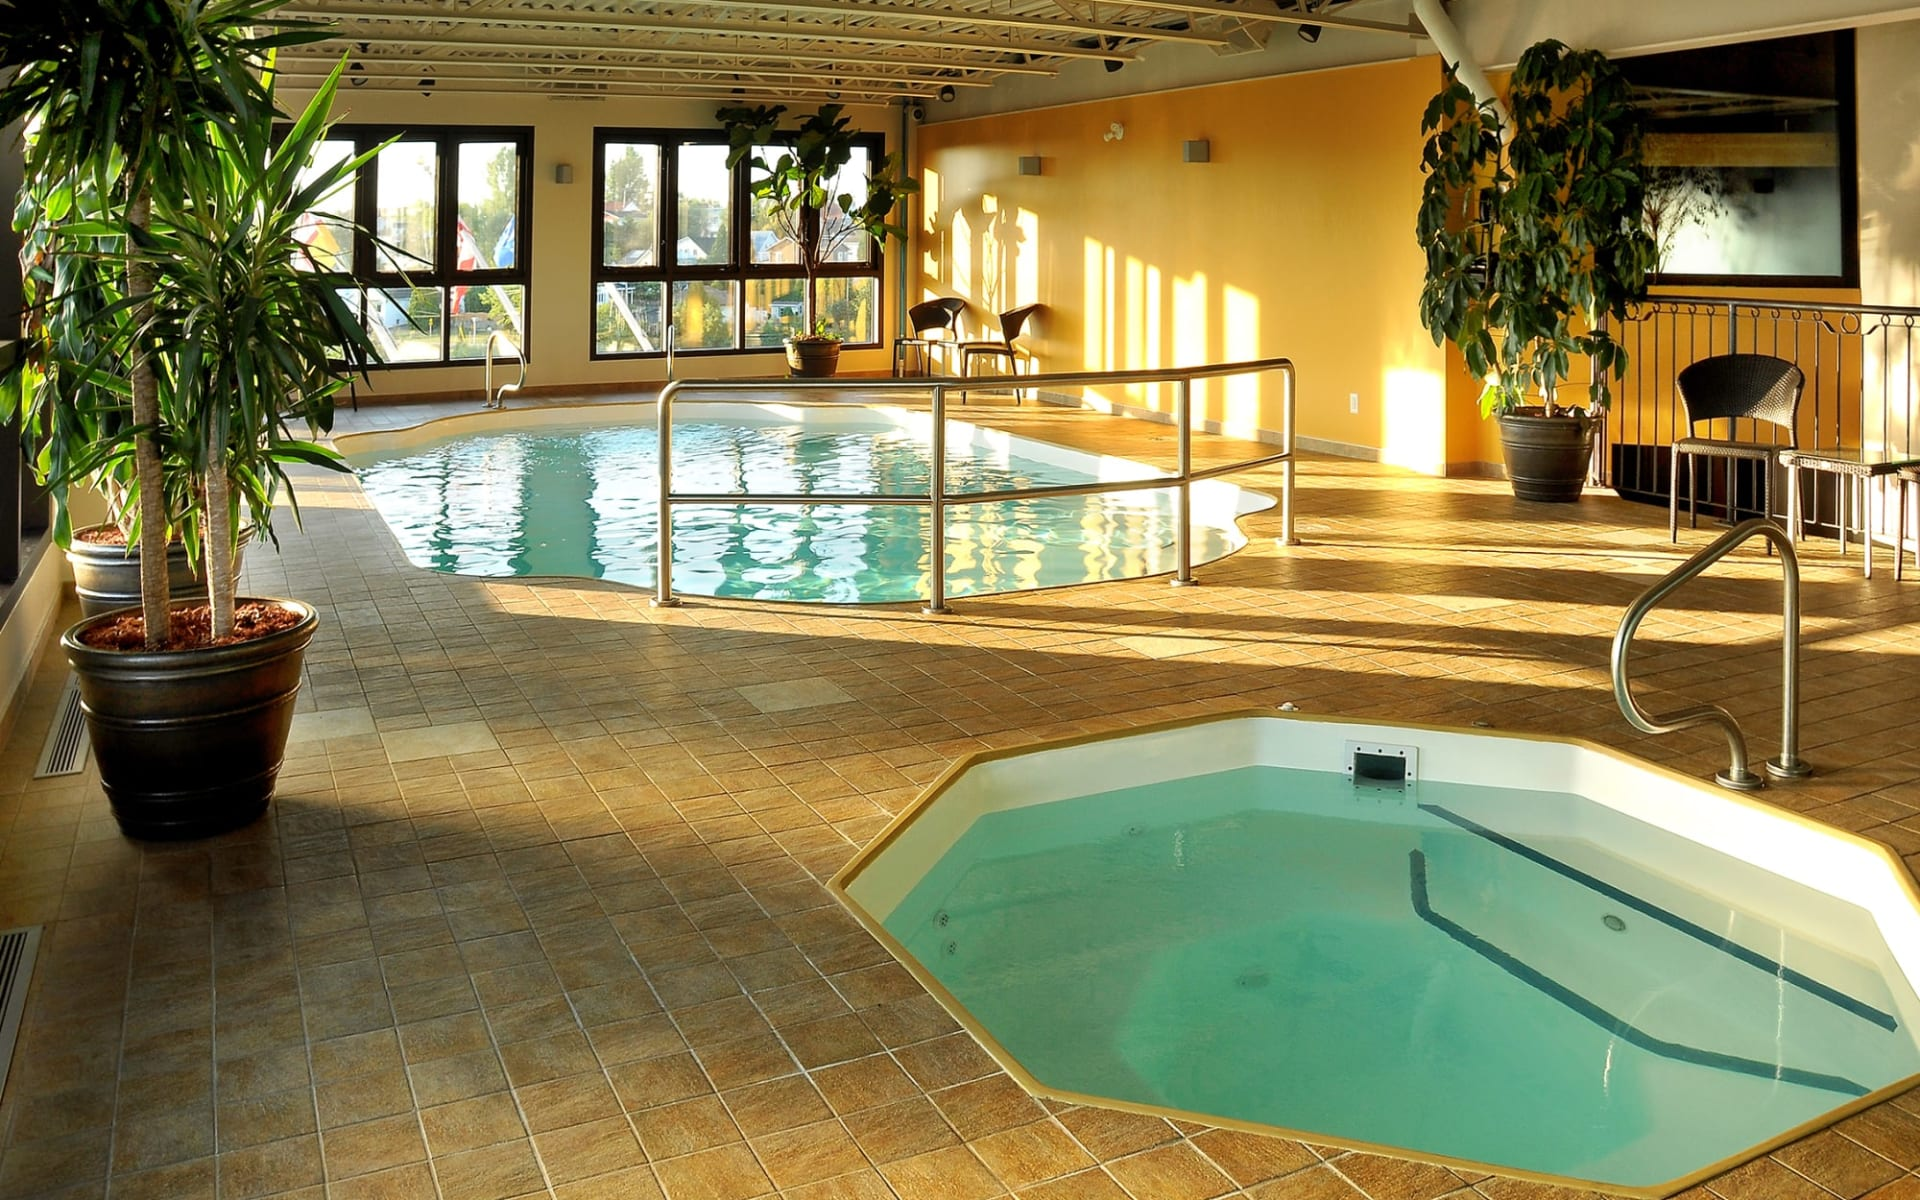 Hotel Universel in Alma: Facilities_Hotel Universel_Pool_Jonview